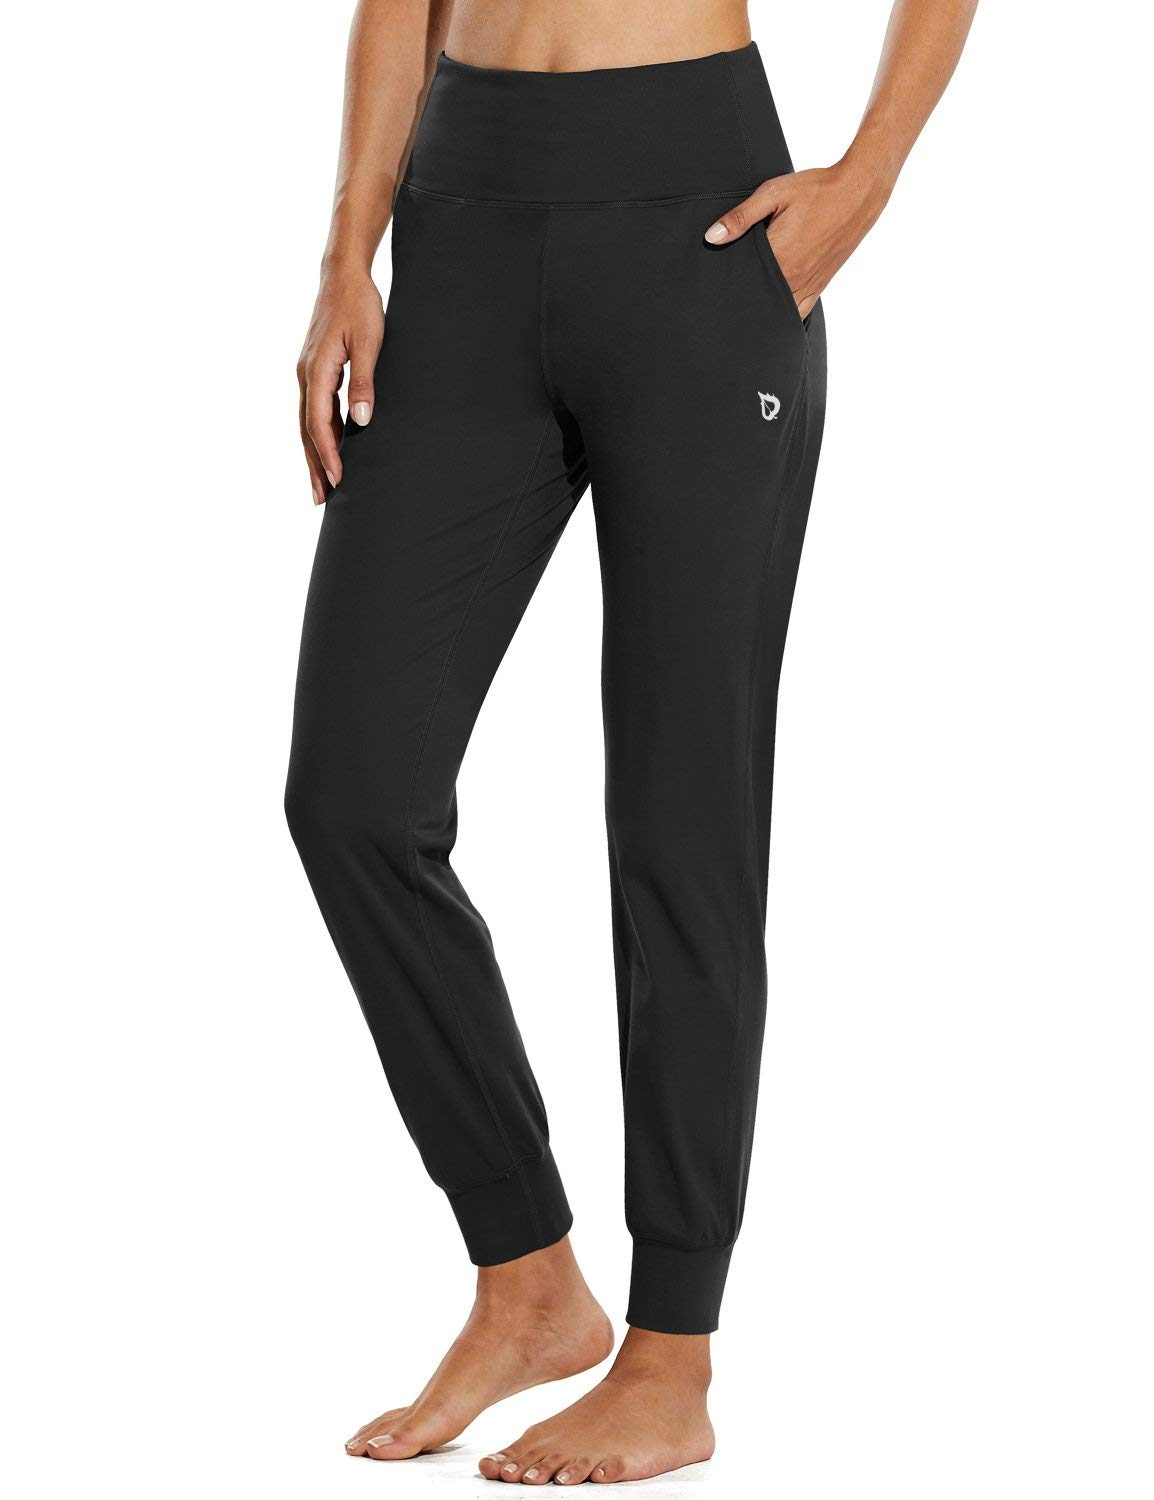 BALEAF Women's Workout Joggers Buttery Soft Athletic Running Sweat Pants Pockets Lounge Yoga Active